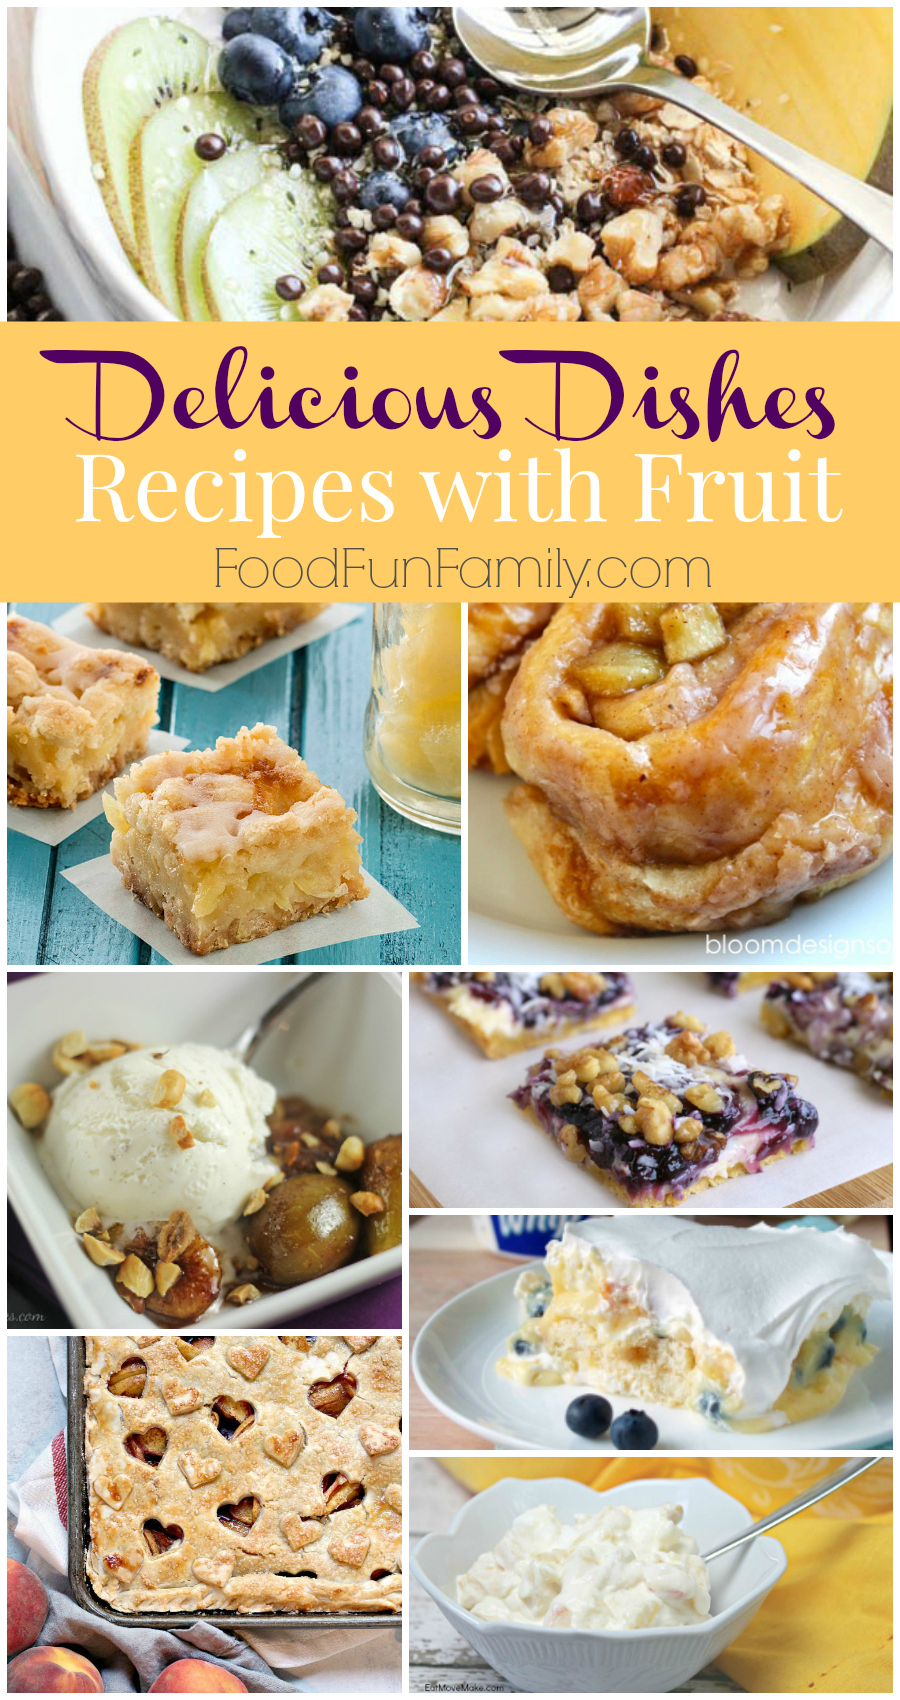 Delicious Dishes #34 Host Favorites - 8 delicious recipes with fruit